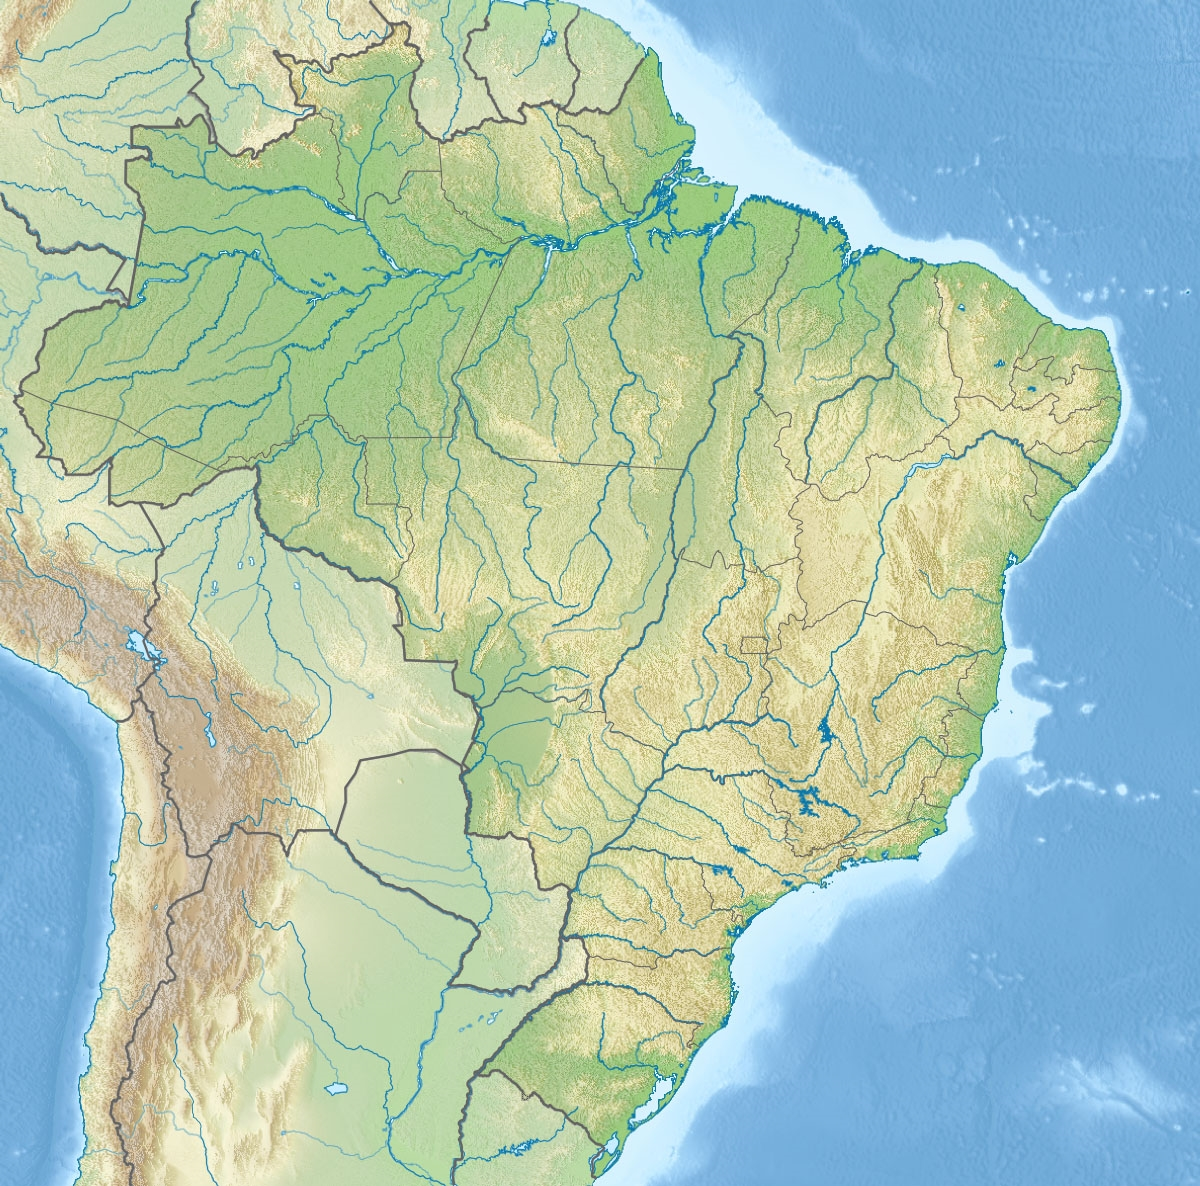 Bento Rodrigues dam disaster is located in Brazil